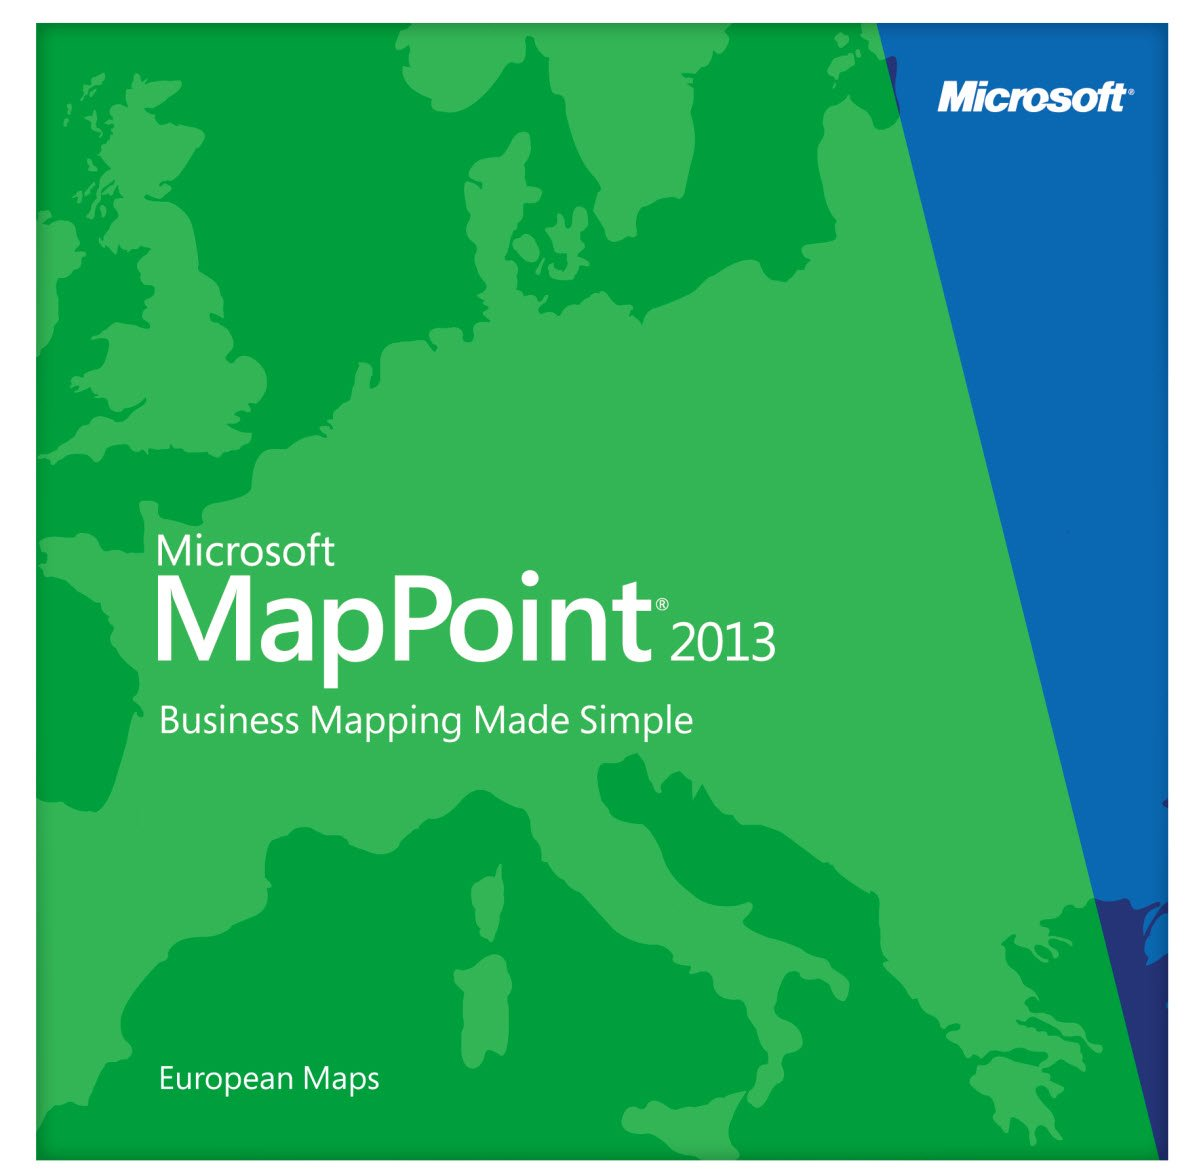 Microsoft mappoint europe 2017 free download - globsaatevo's